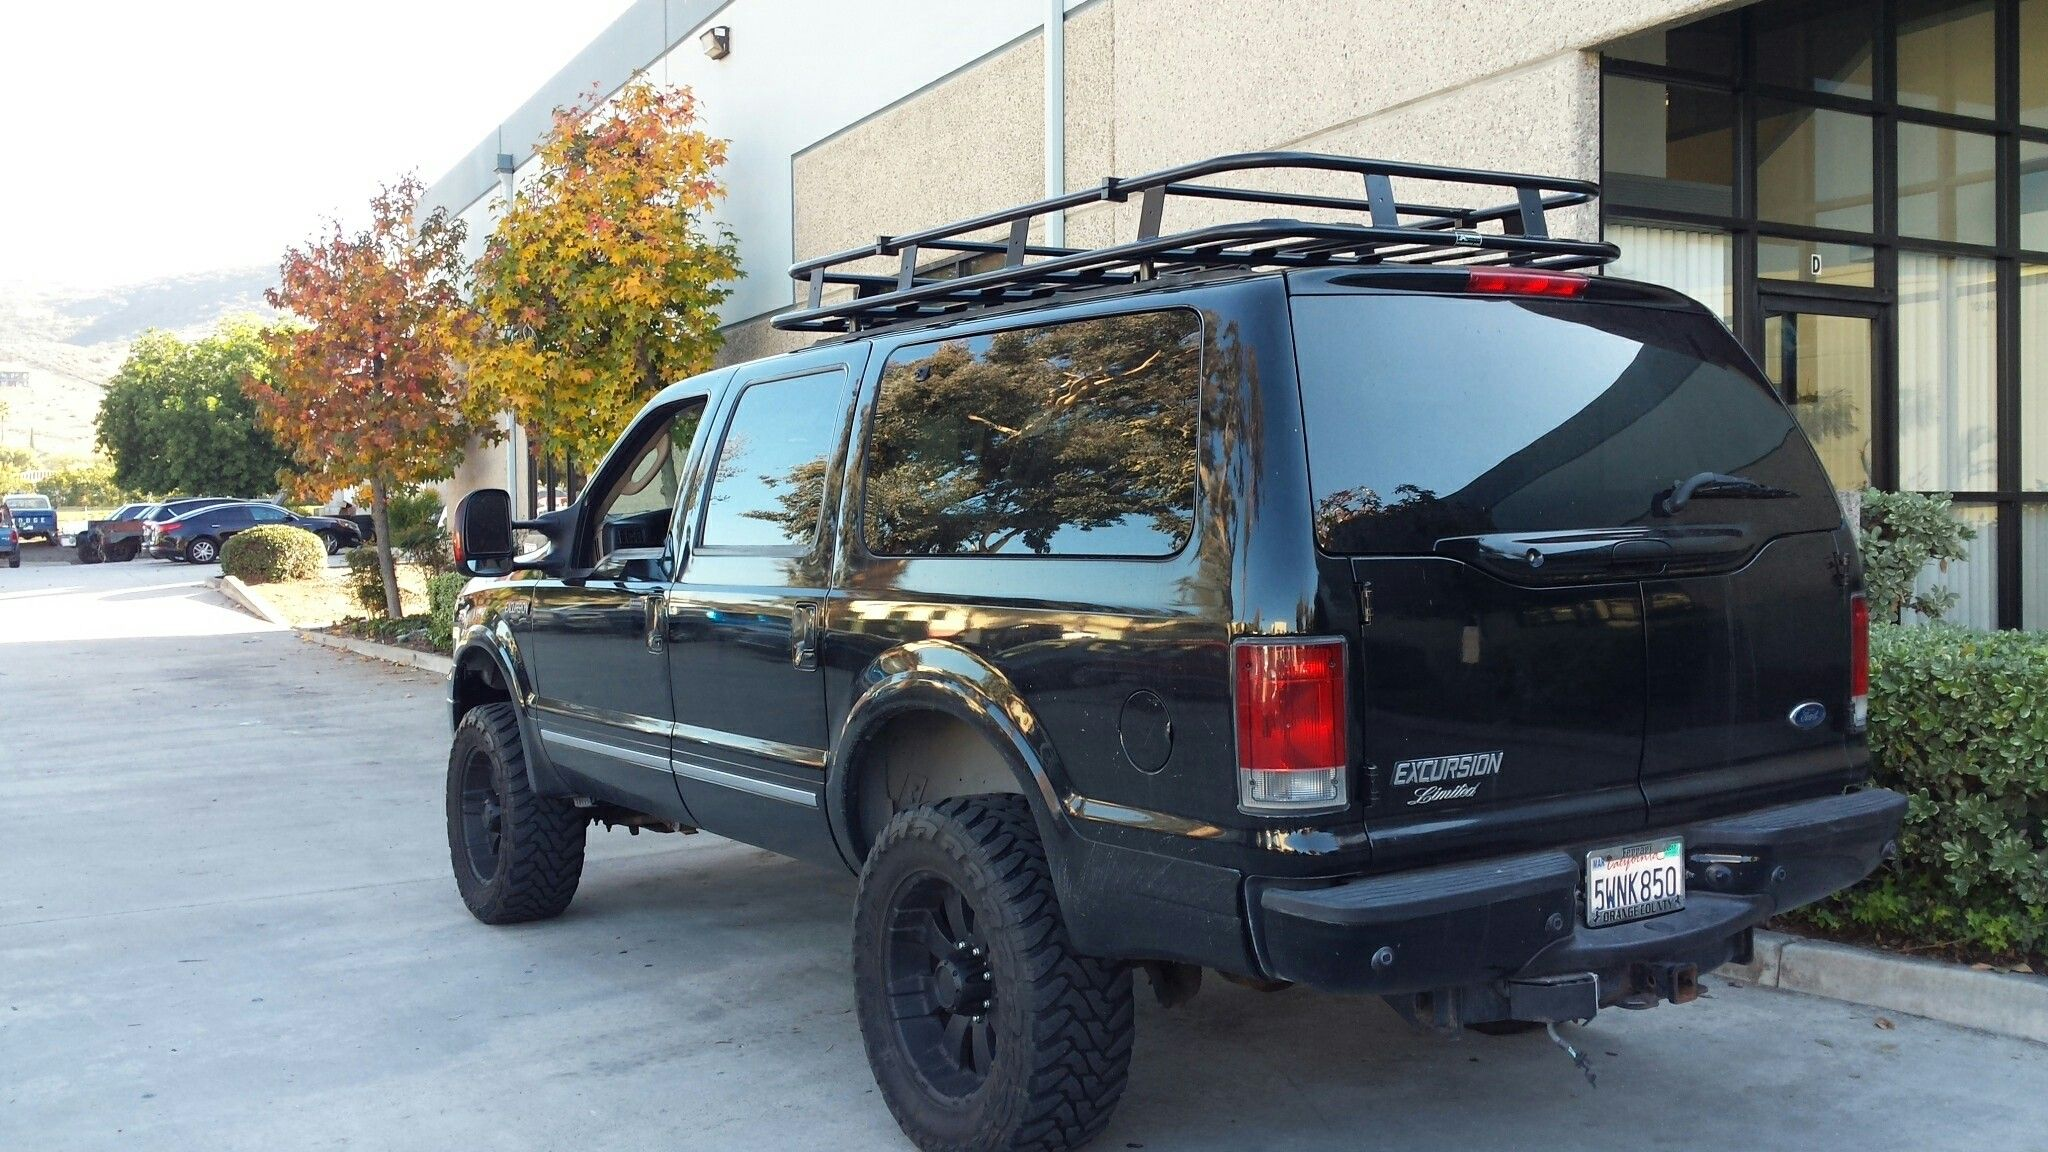 Ford Excursion With Aluminess Roof Rack Ford Excursion Expedition Vehicle Excursions